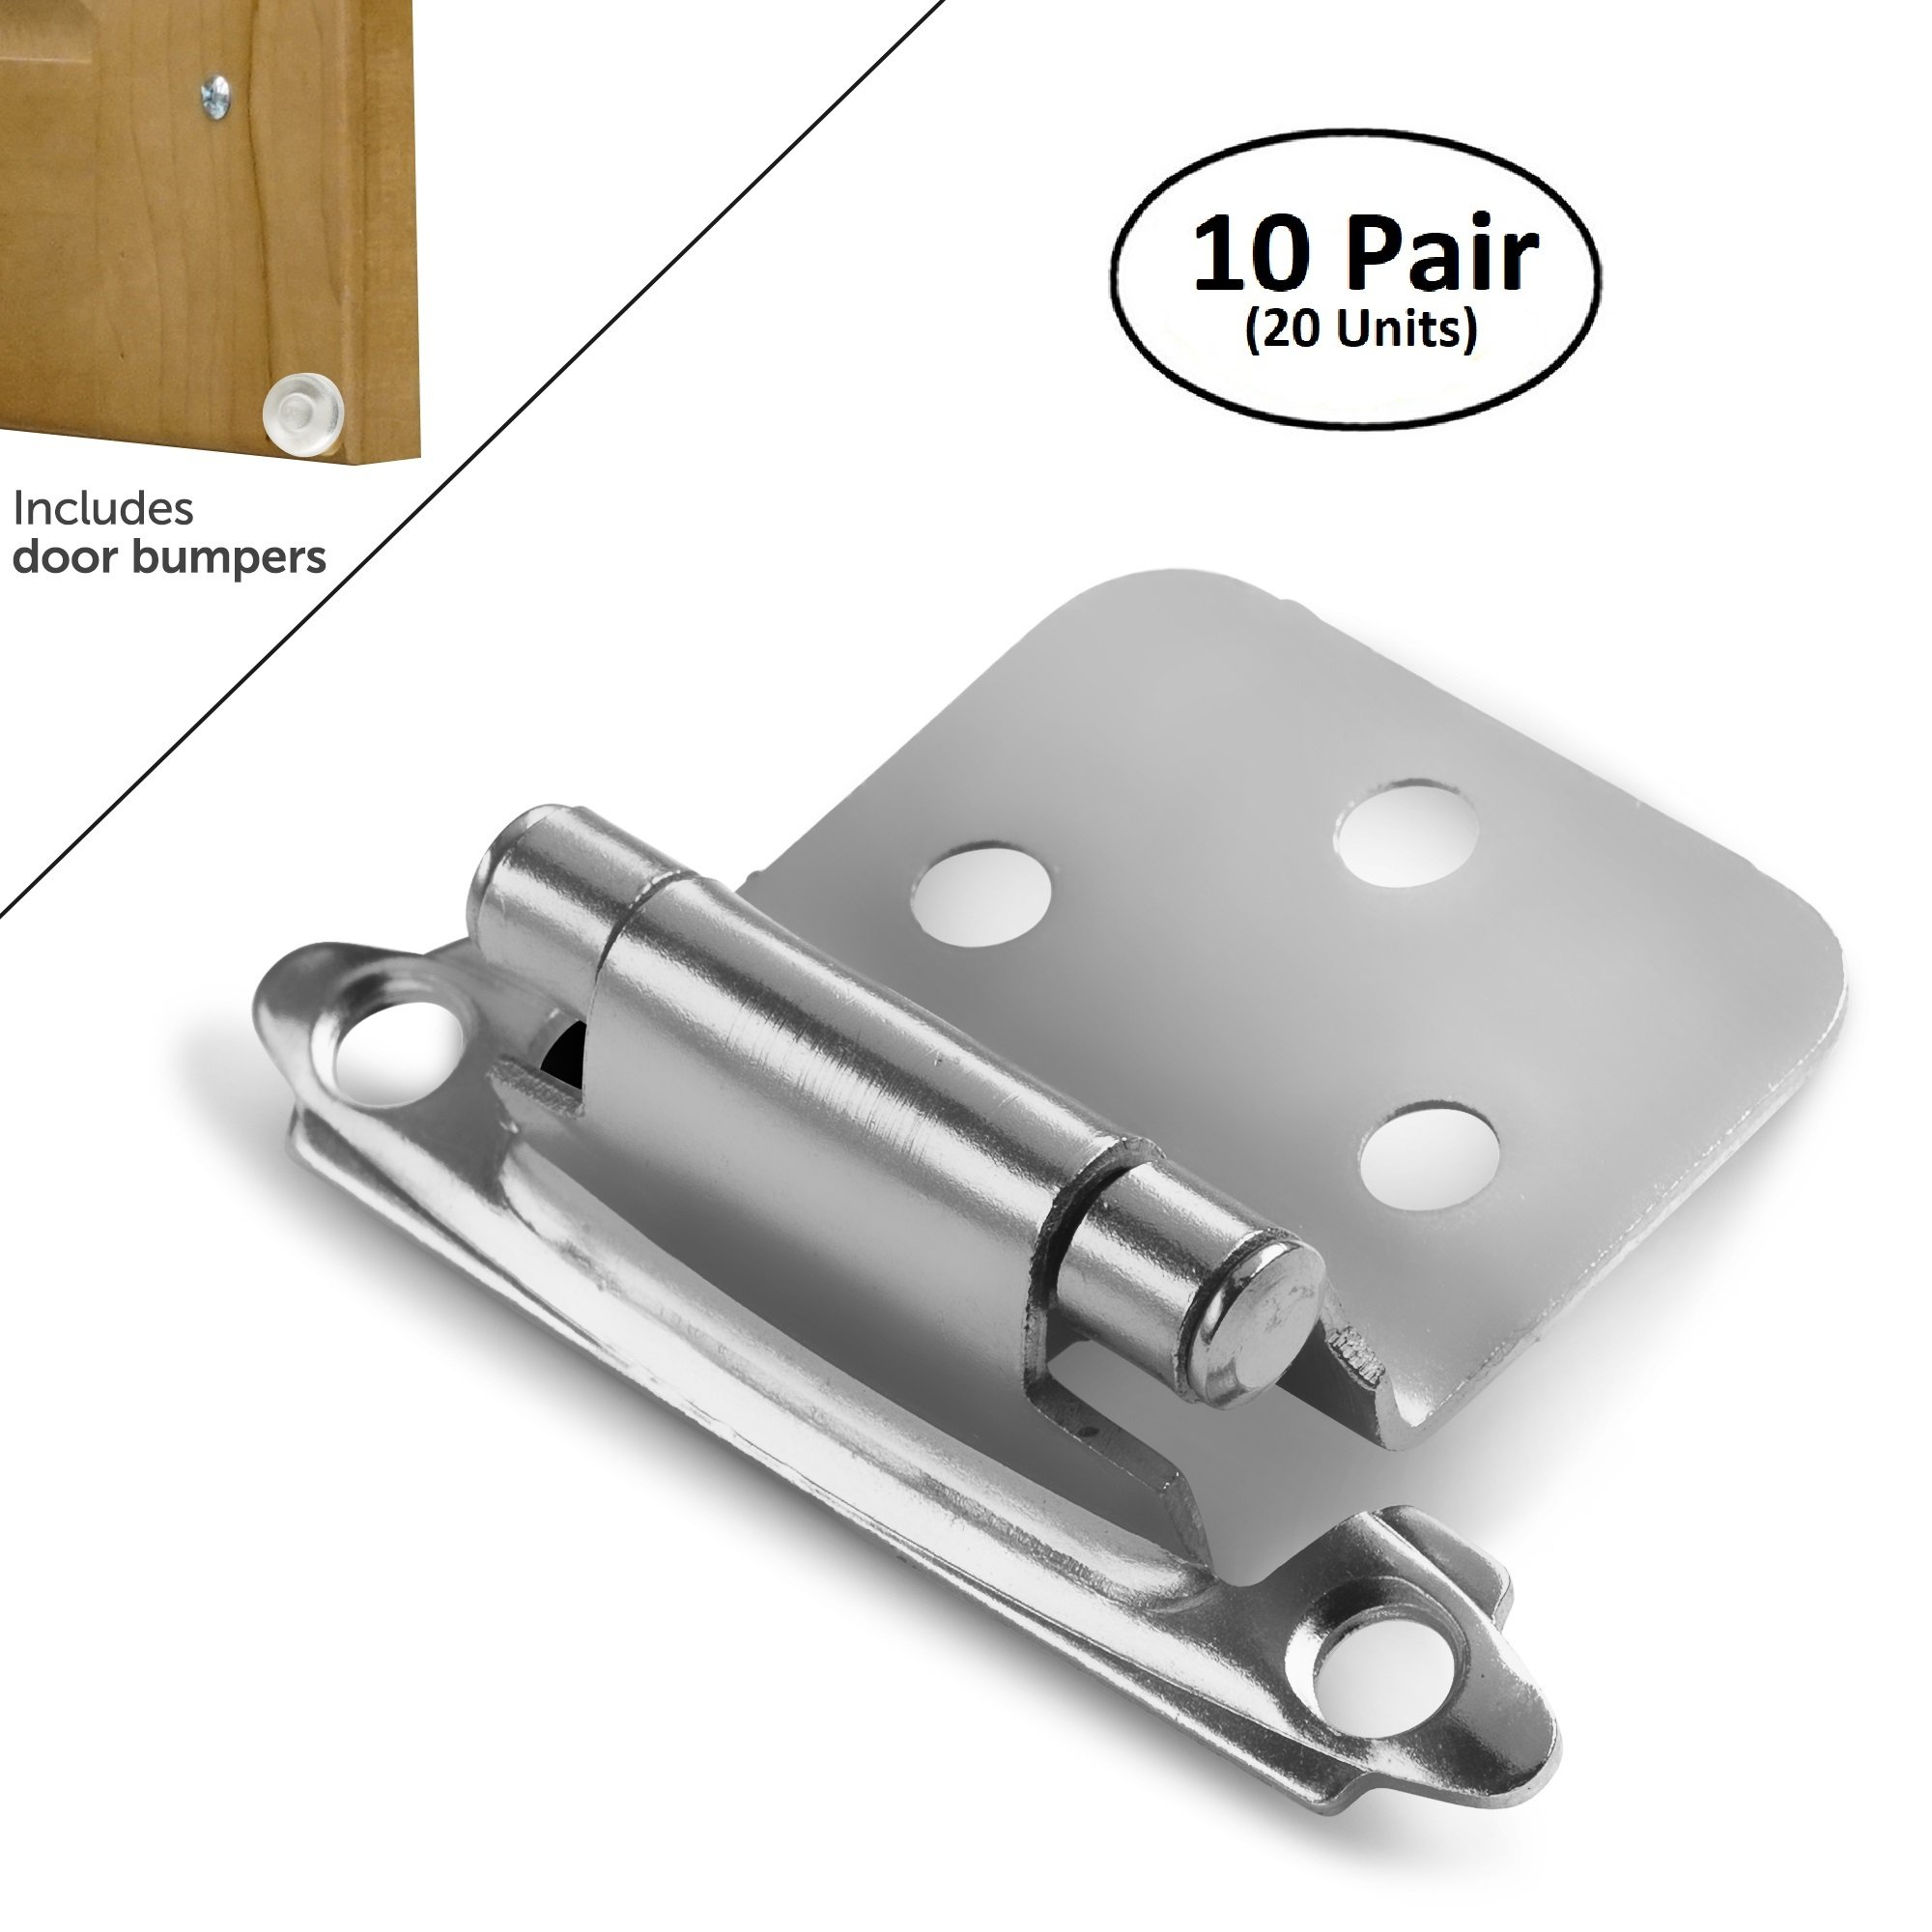 Berlin Modisch Overlay Cabinet Hinge 10 Pair (20 Units) Self-Closing Decorative, Face Mount, for Variable Overlay Kitchen Cabinet Doors Satin Nickel Finish, with Sound Dampening Door Bumpers